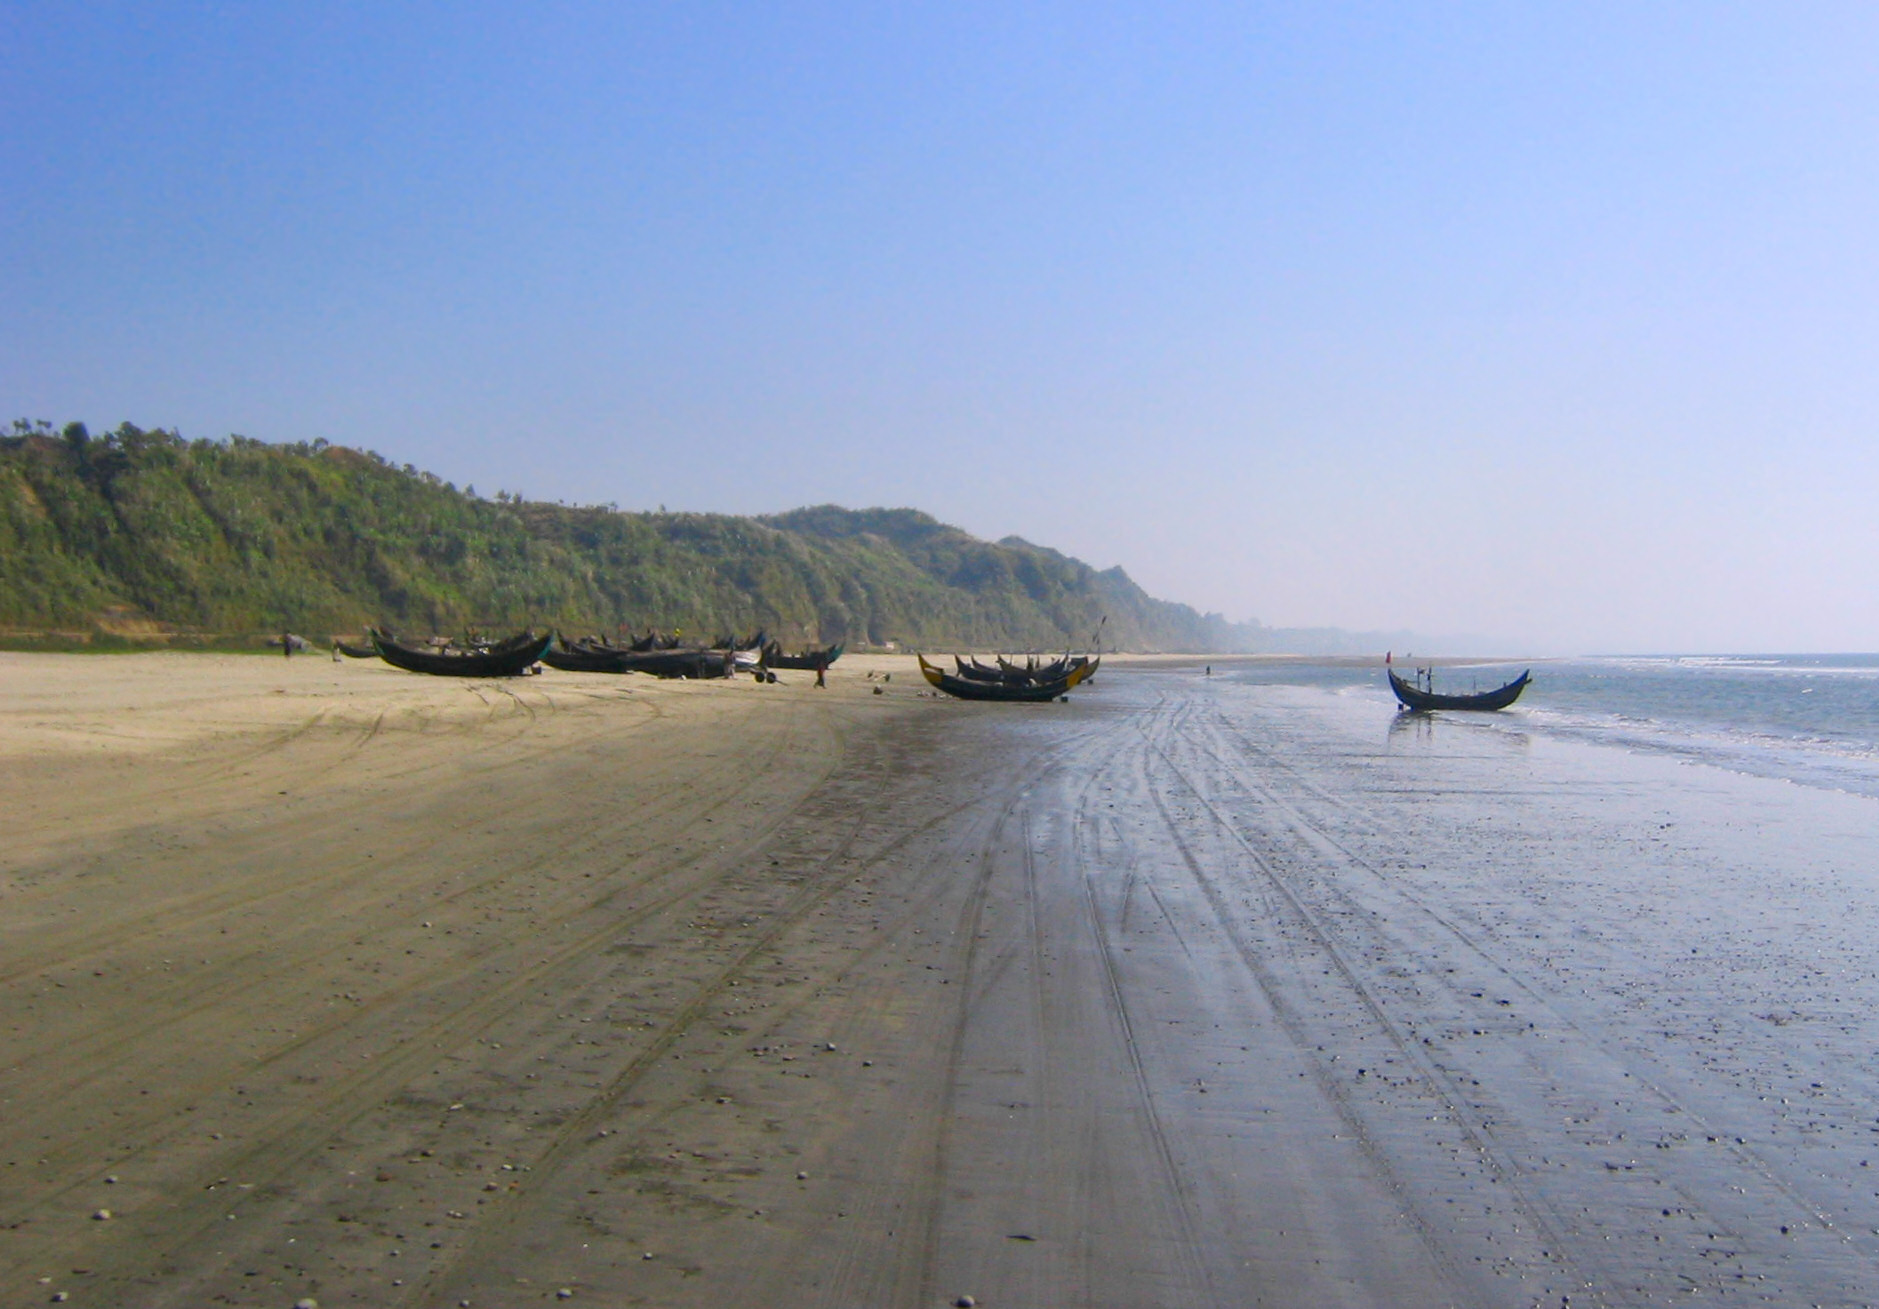 Cox's Bazar is the longest natural sea beach in the world.